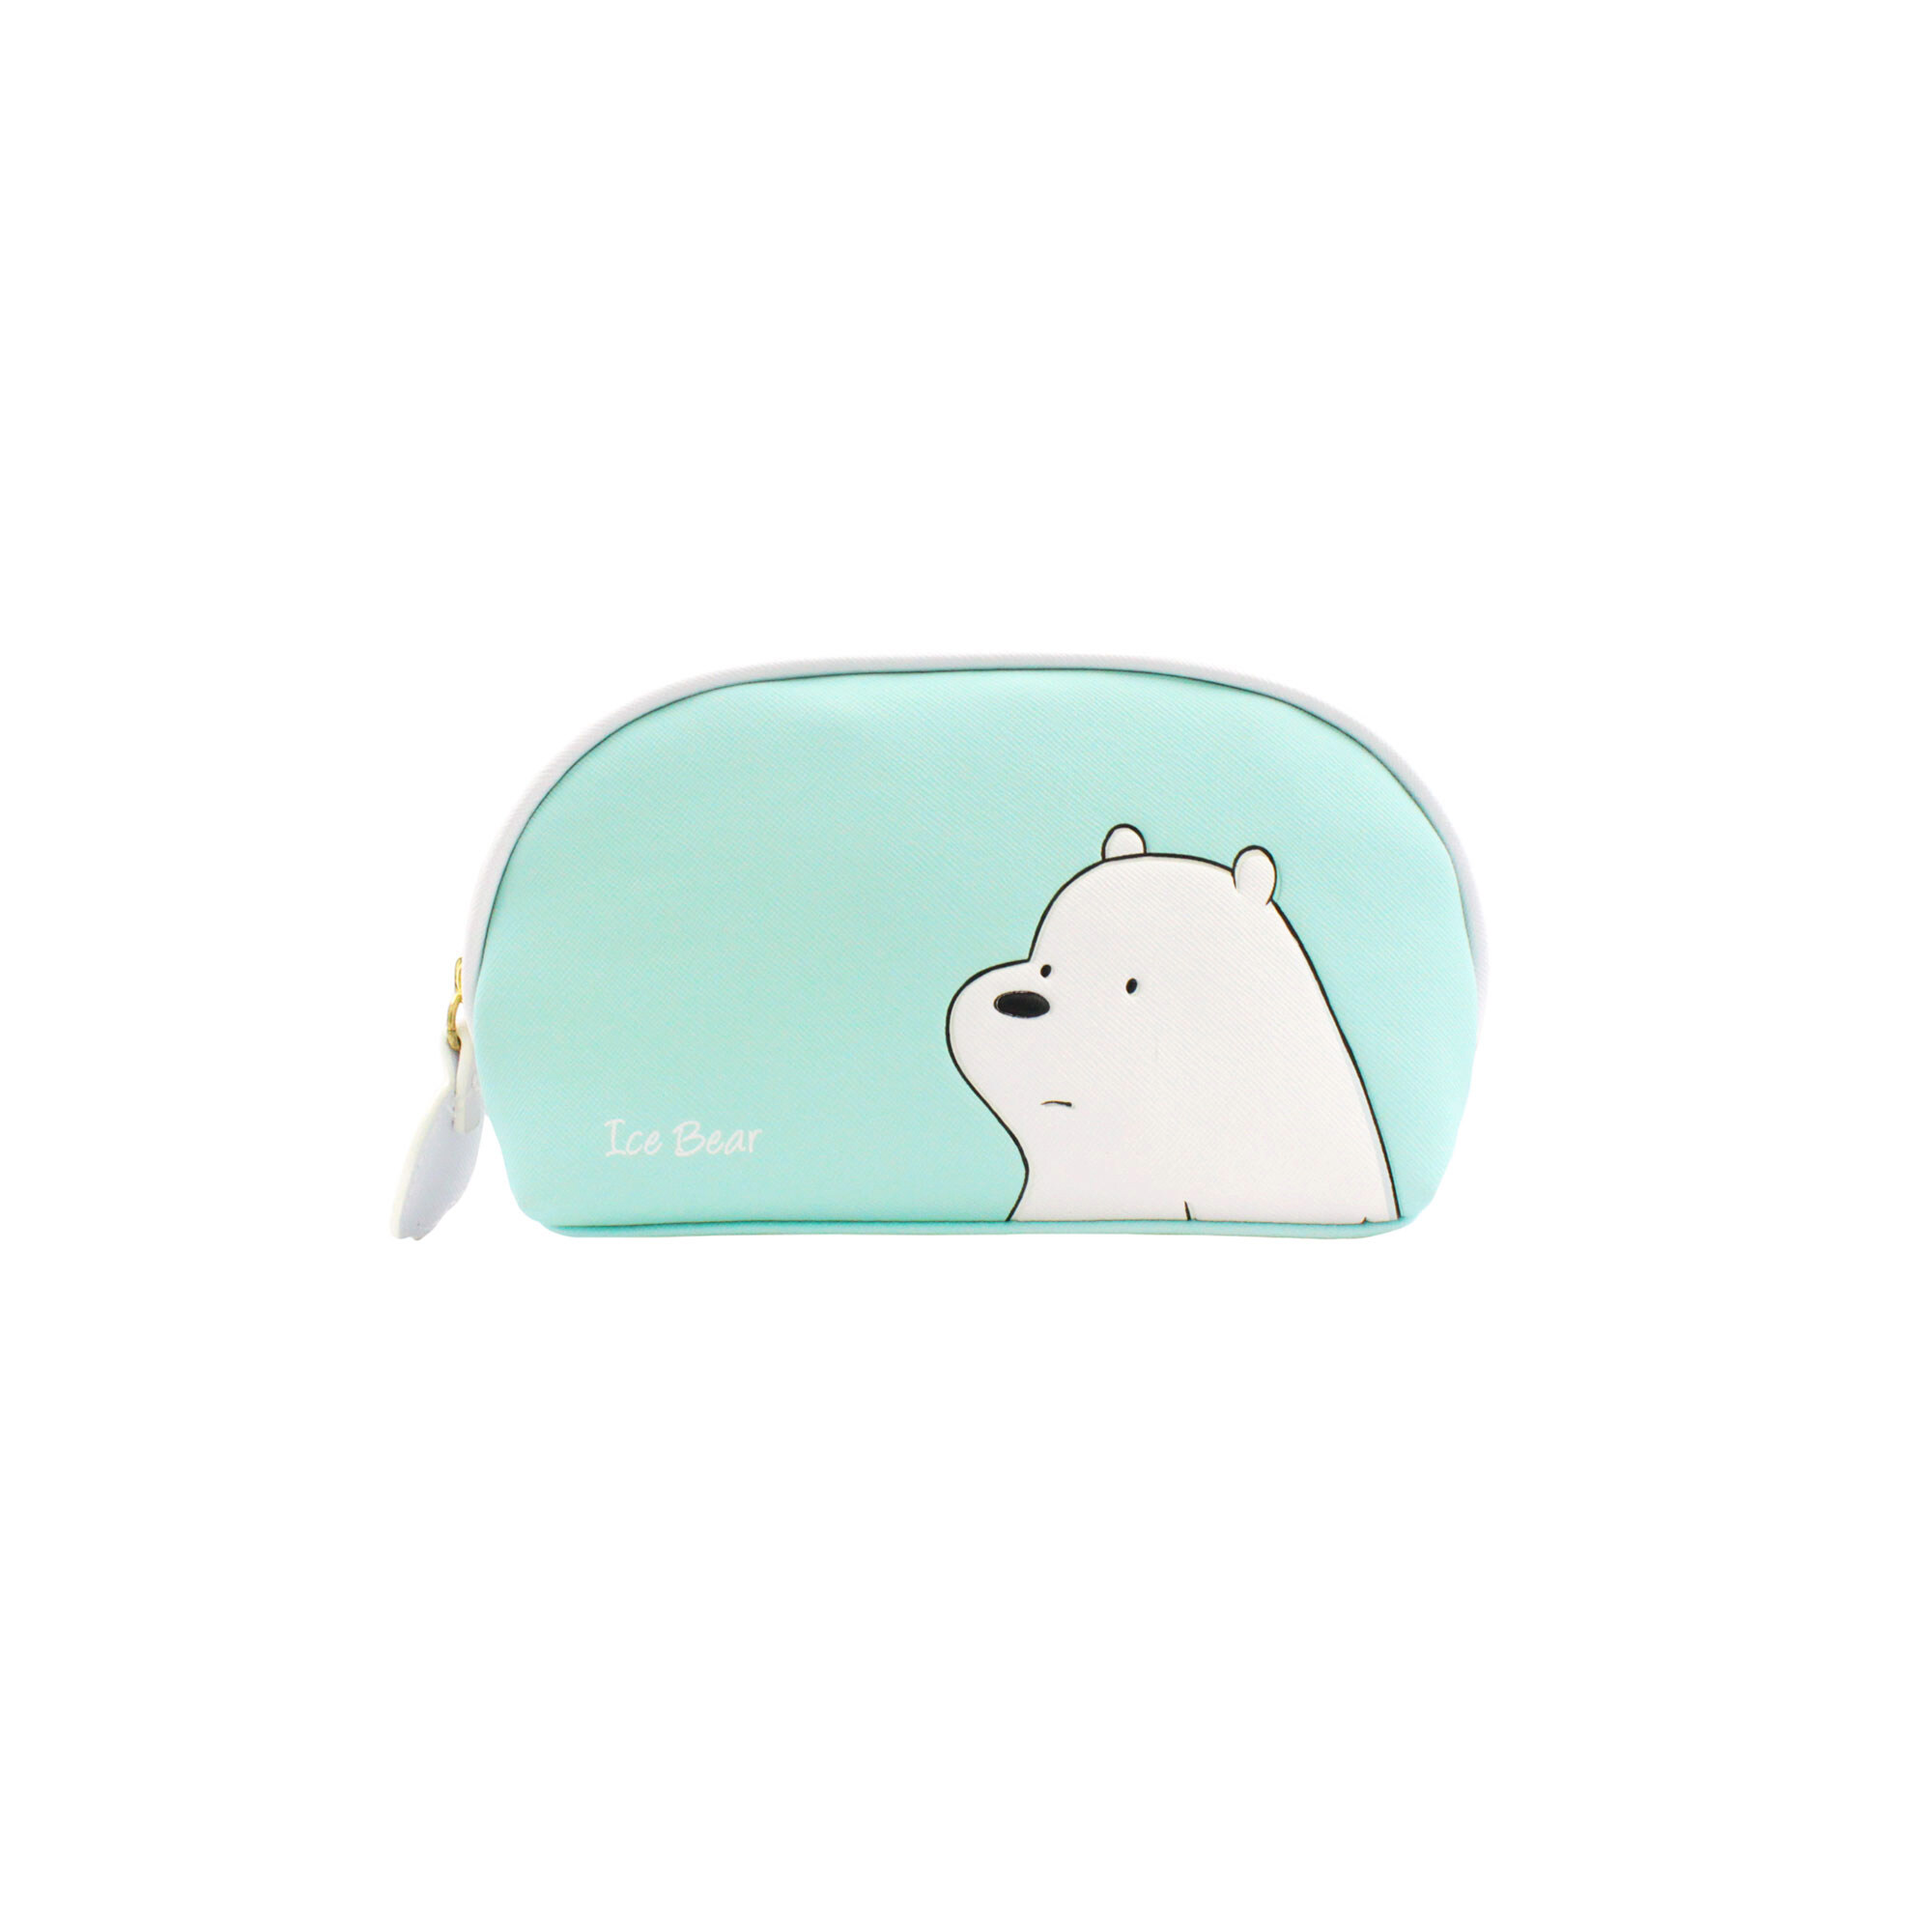 We Bare Bears Ice Bear Multipurpose Pouch -Turquoise & White Colour